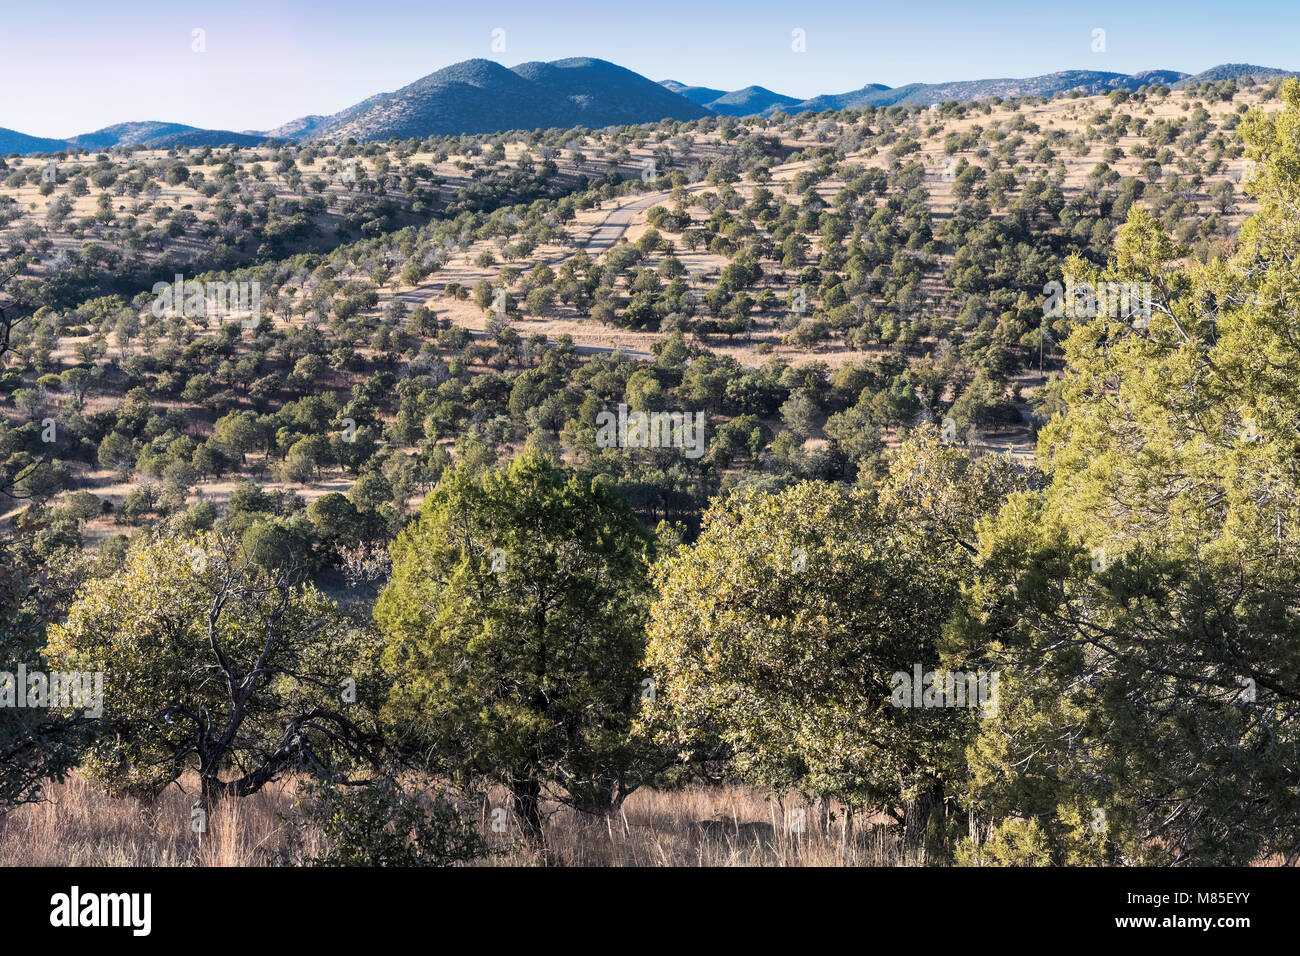 Southeastern Arizona, near Parker Canyon Lake, Scenic Route 83 is off in the distance. - Stock Image